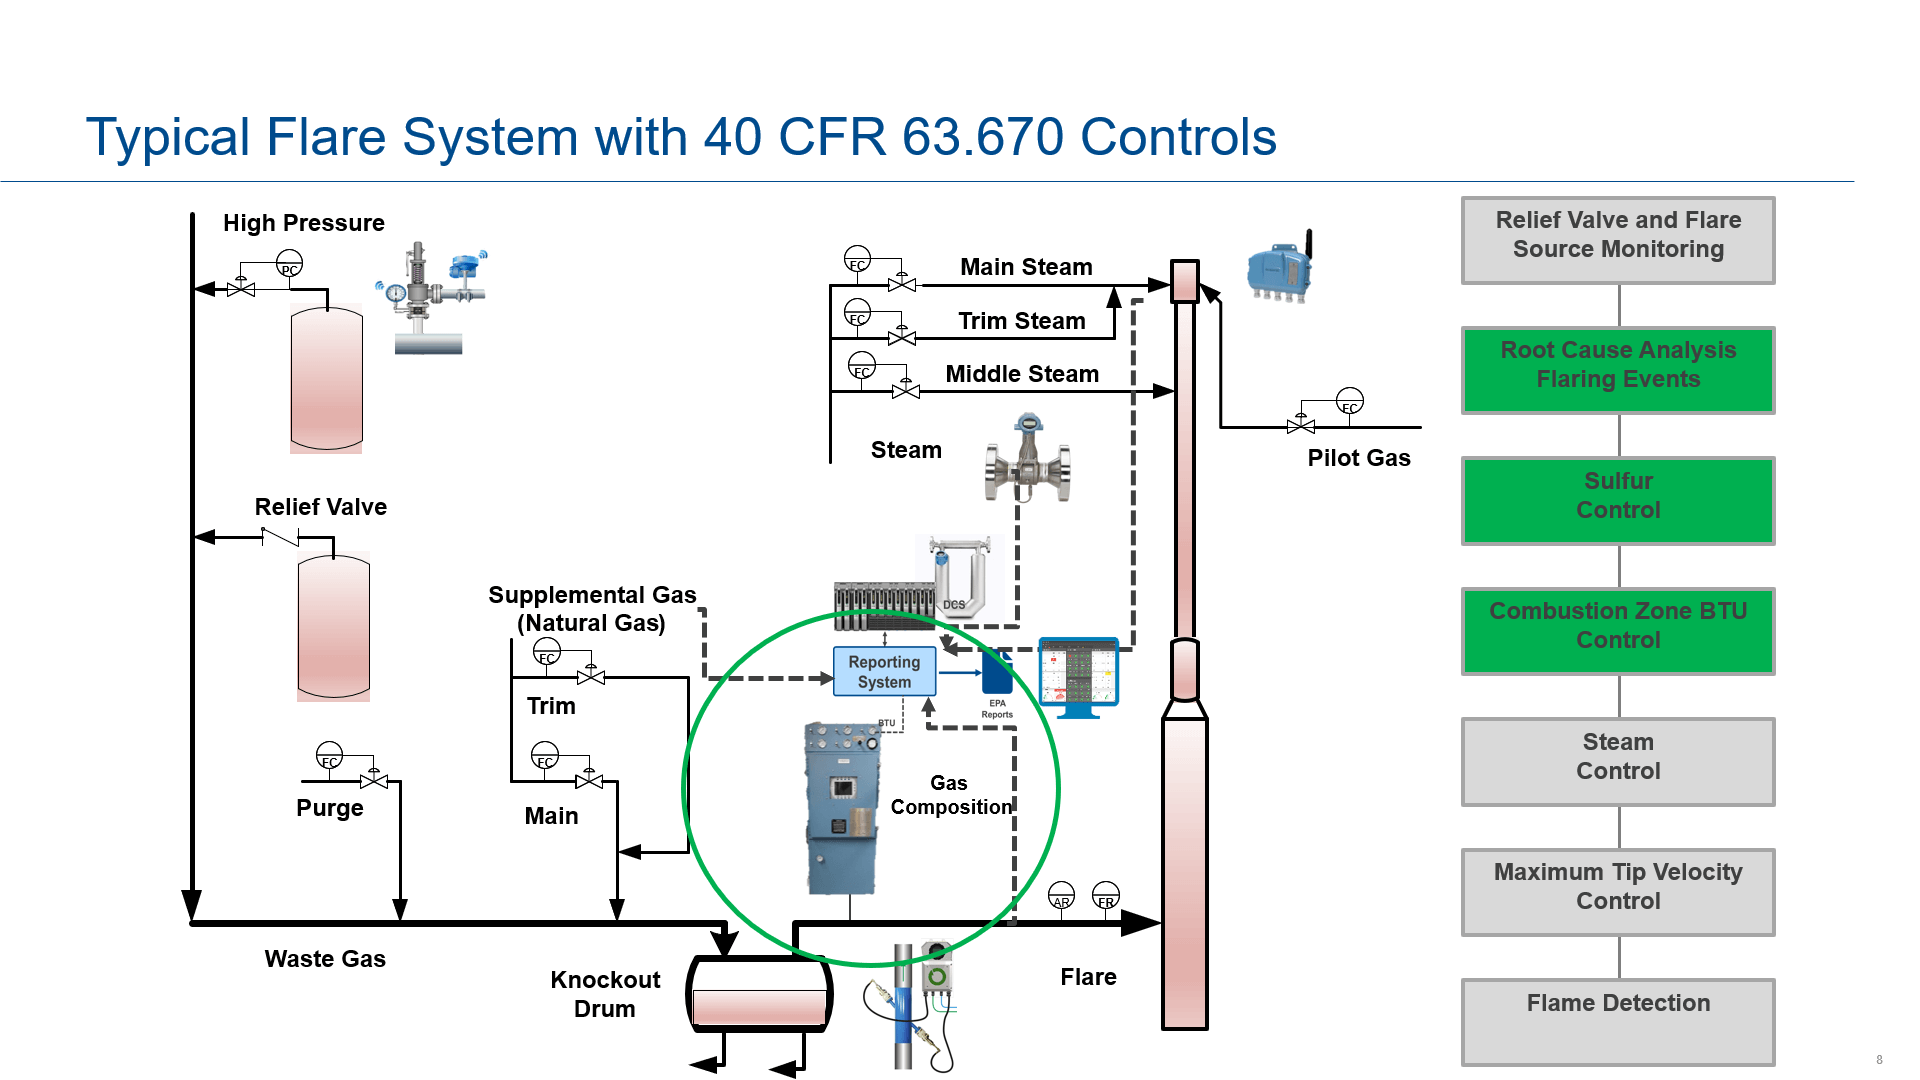 Typical flare system for 40 CFR 63.670 reporting